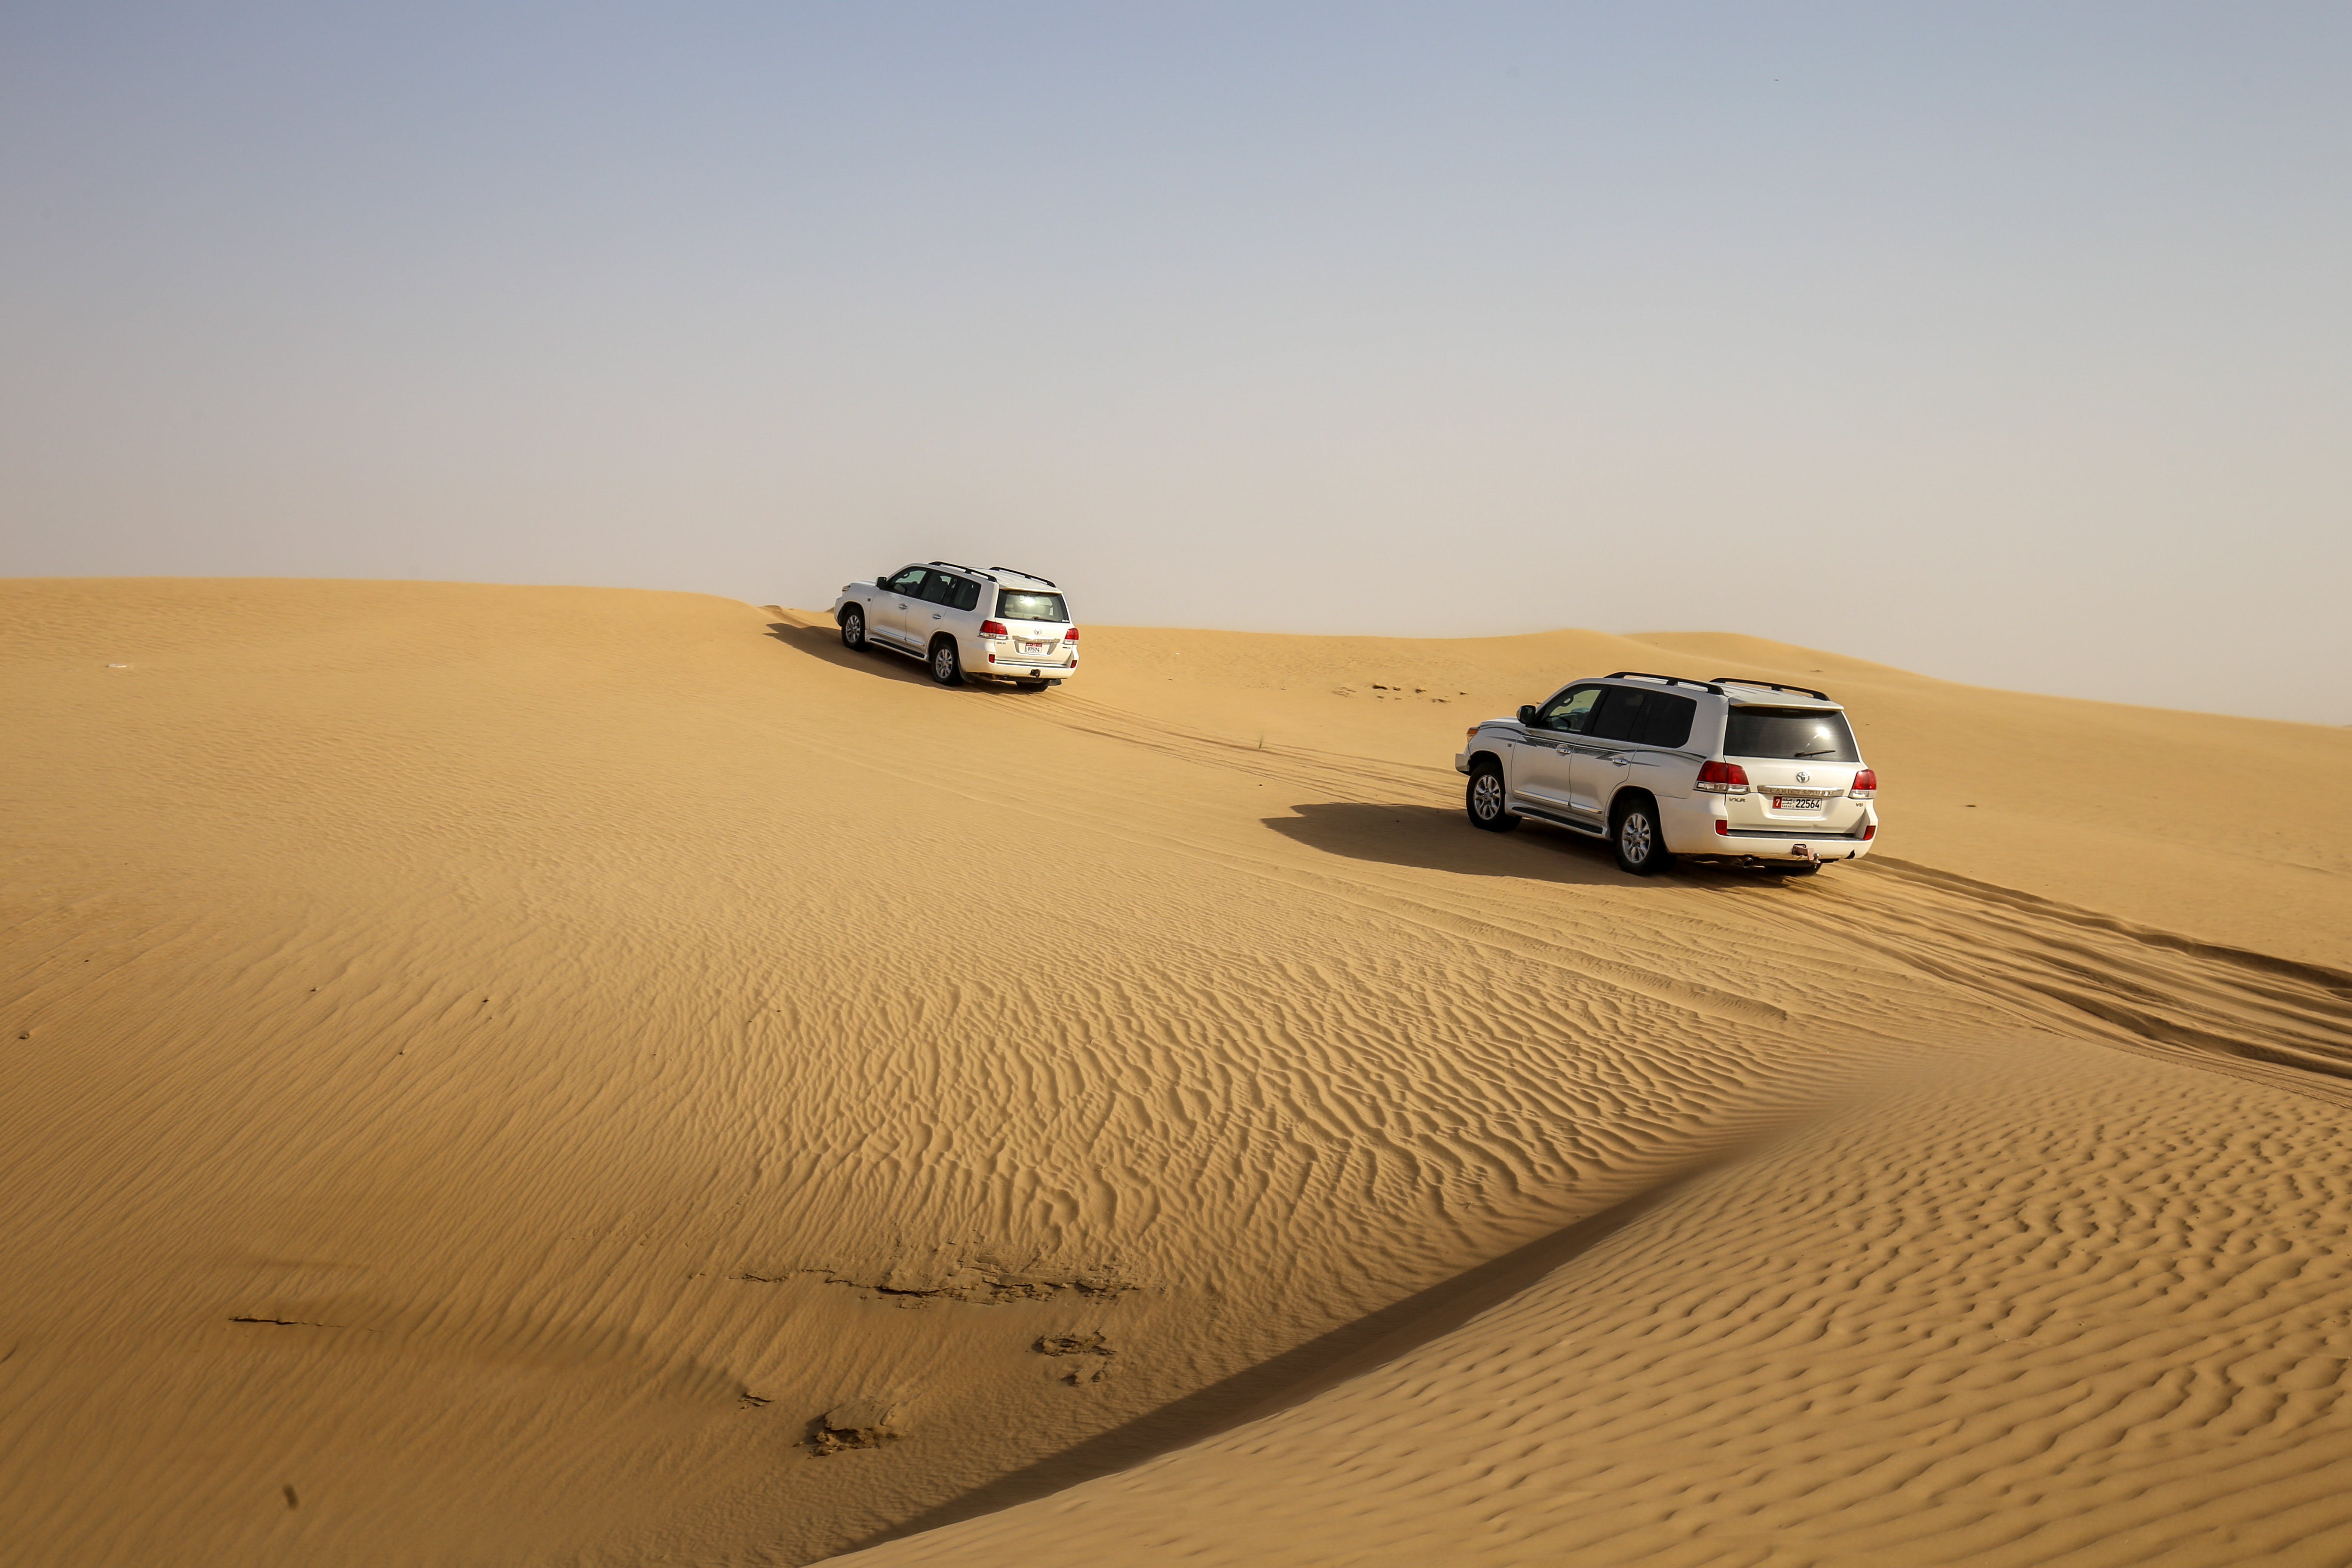 Vehicles Traveling in a Desert